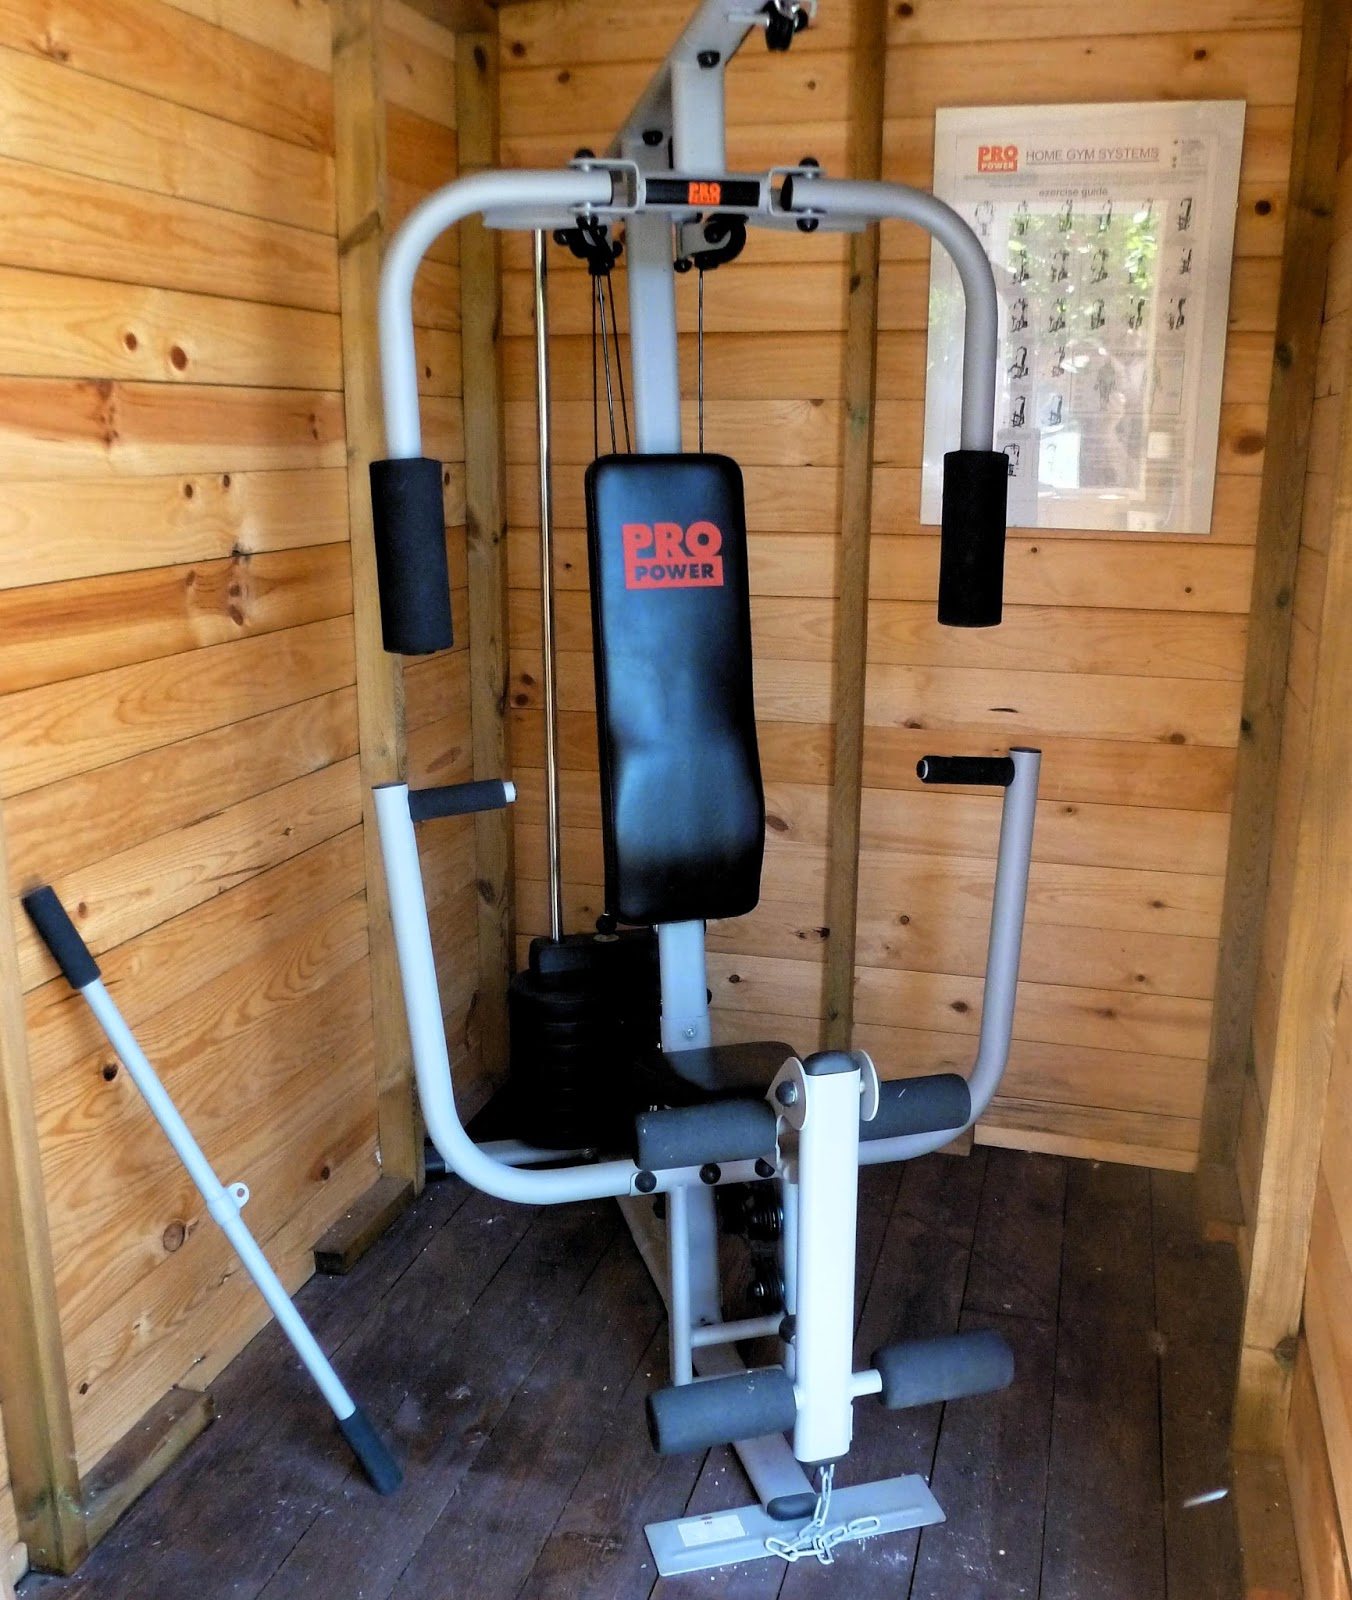 Home Gym Compact: Digame: For Sale Compact Home Gym